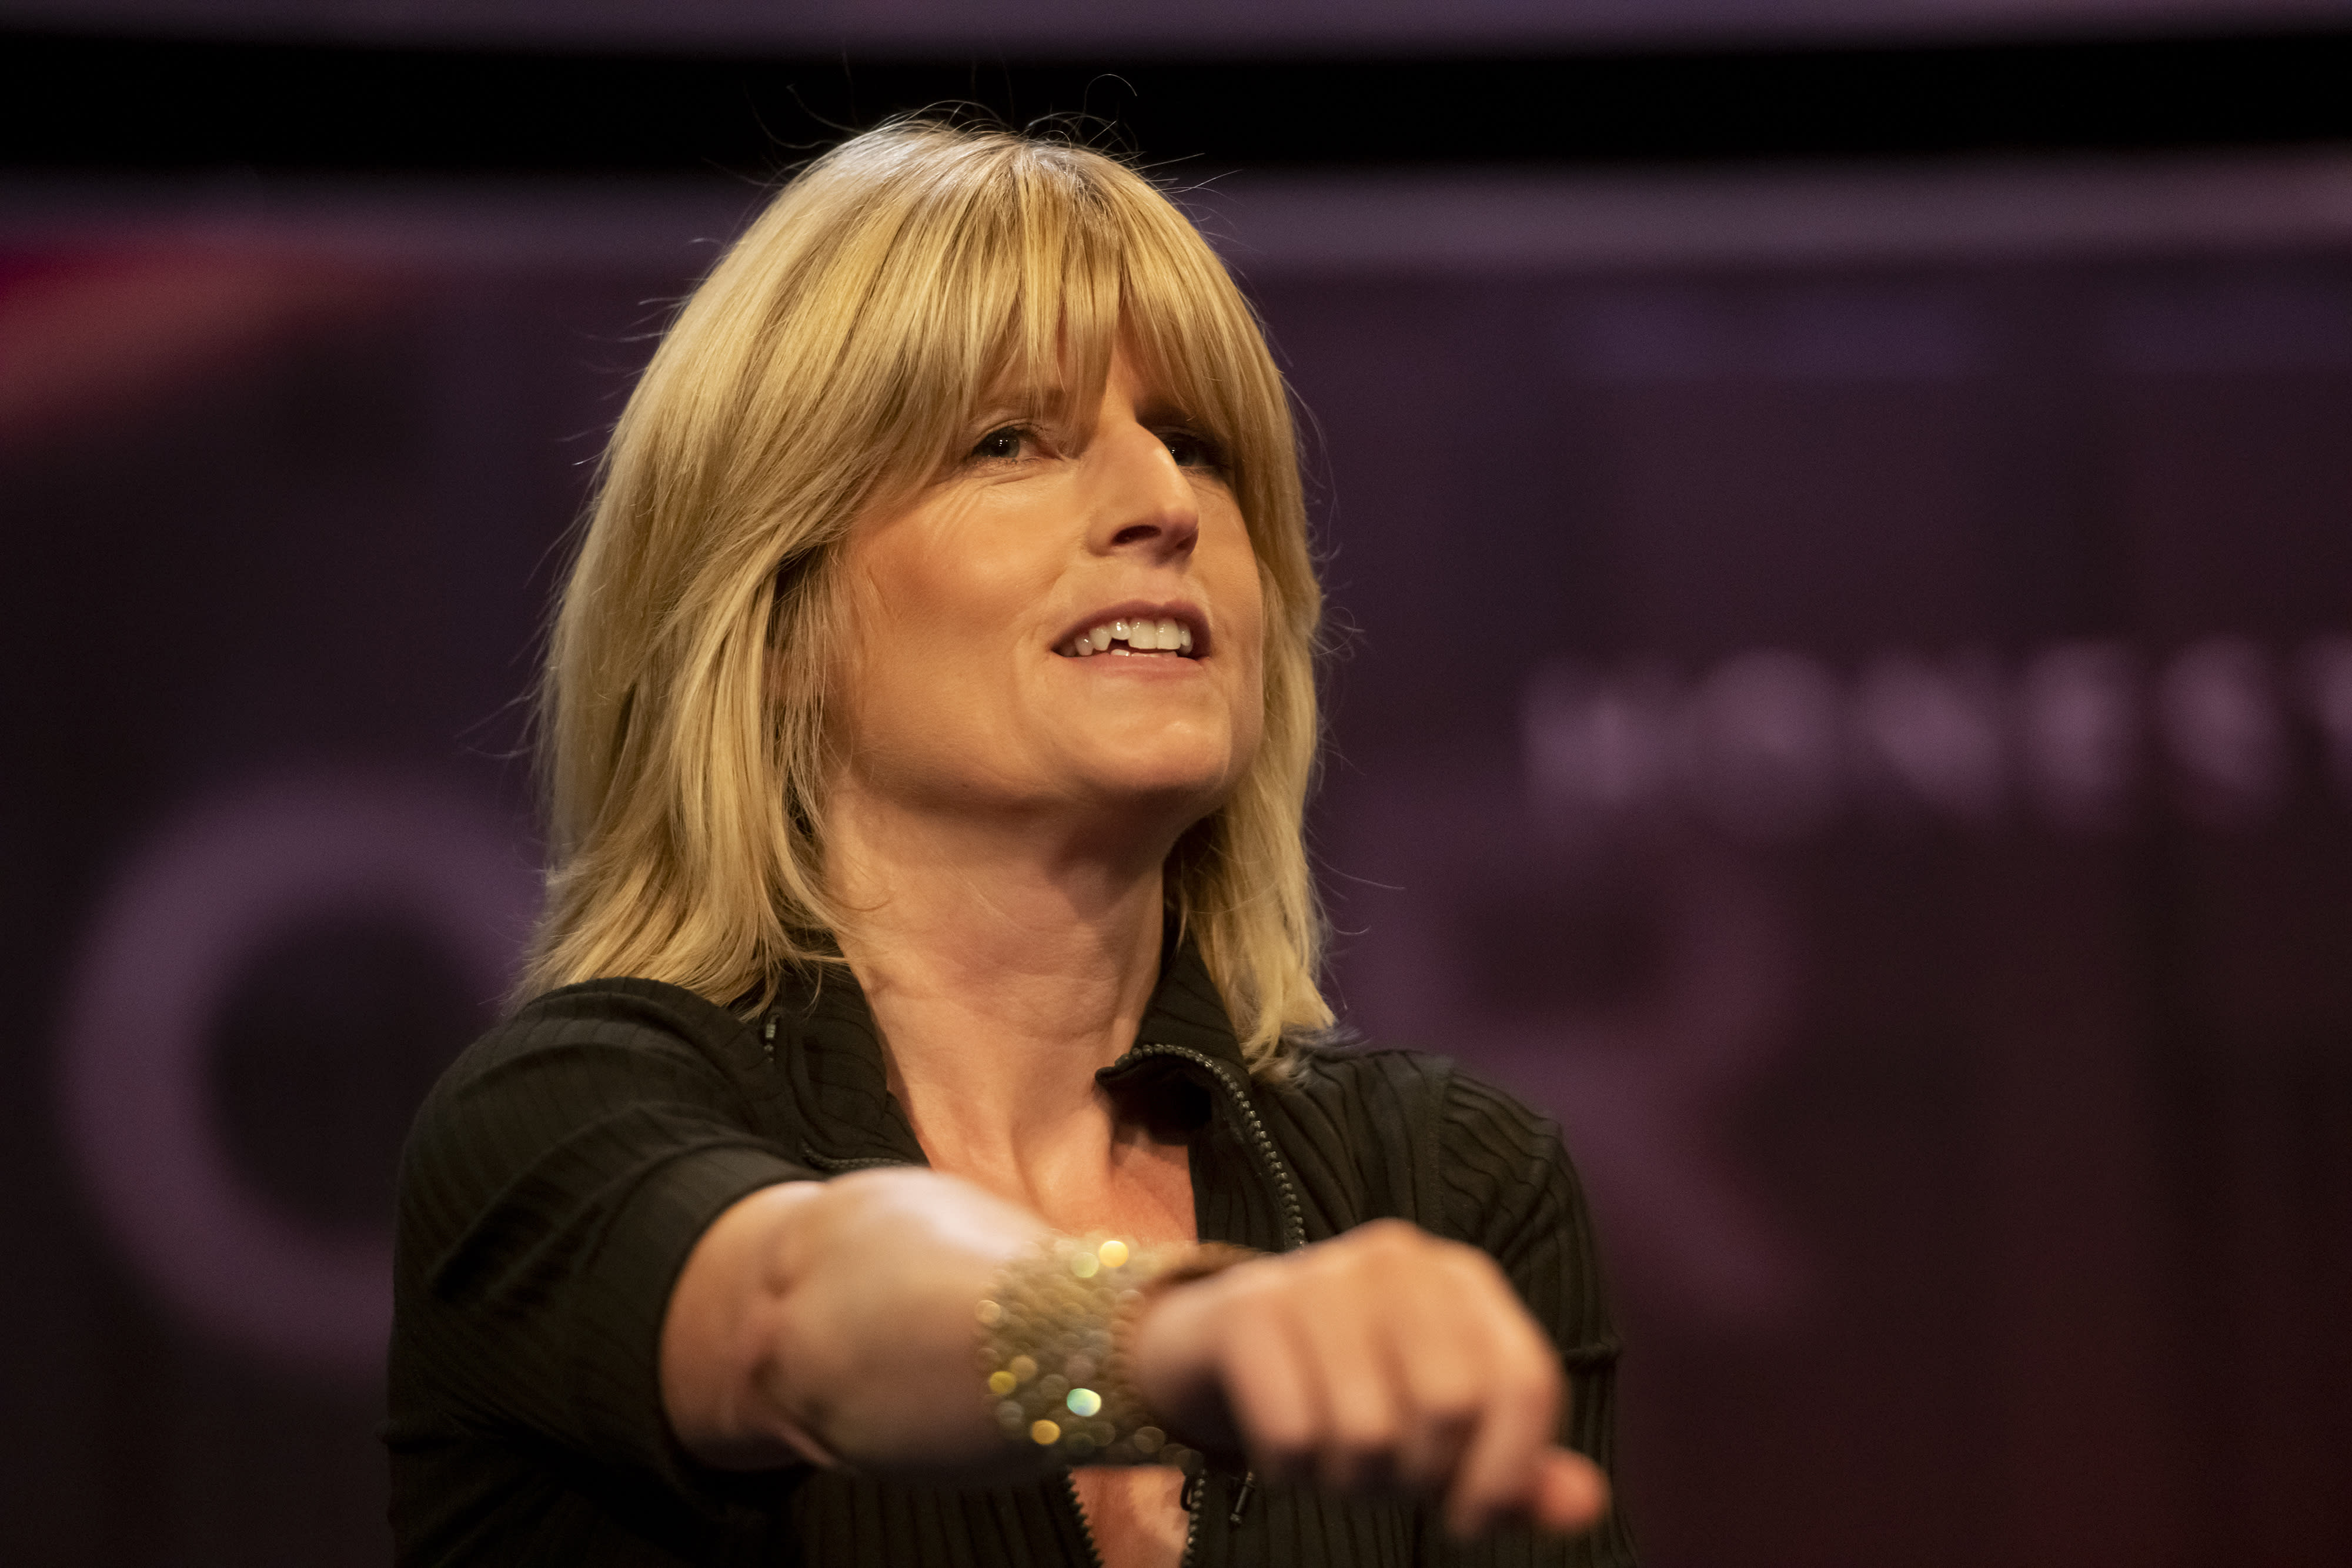 Rachel Johnson said her brother's comments were 'reprehensible'. (Getty)